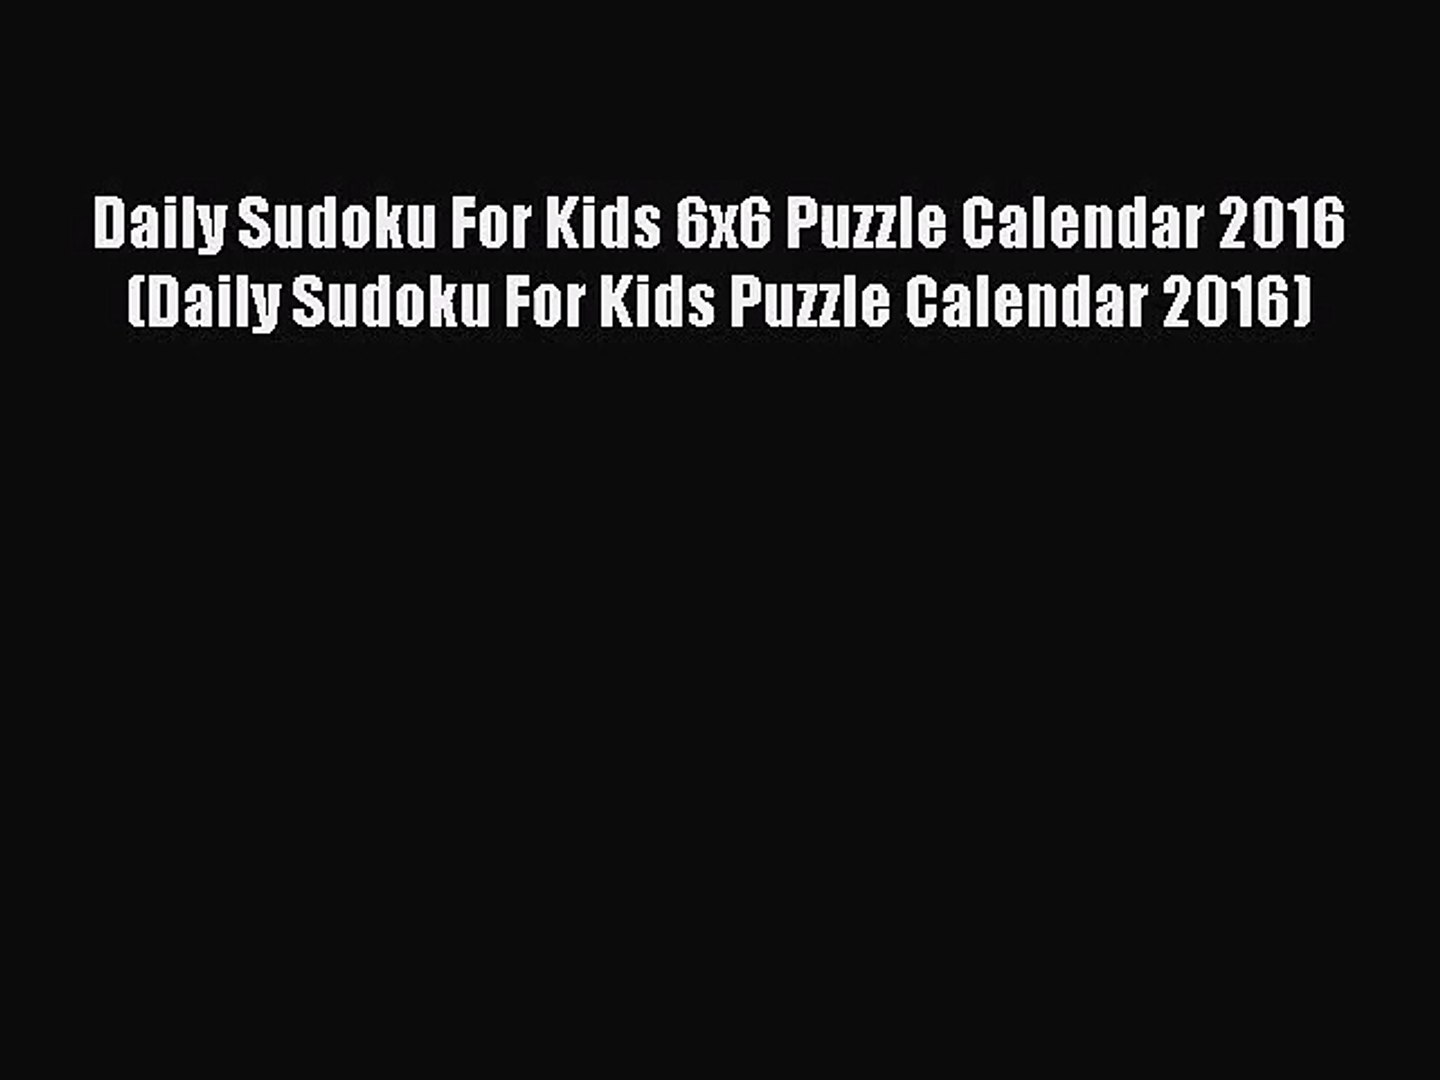 PDF Download - Daily Sudoku For Kids 6x6 Puzzle Calendar 2016 (Daily Sudoku  For Kids Puzzle